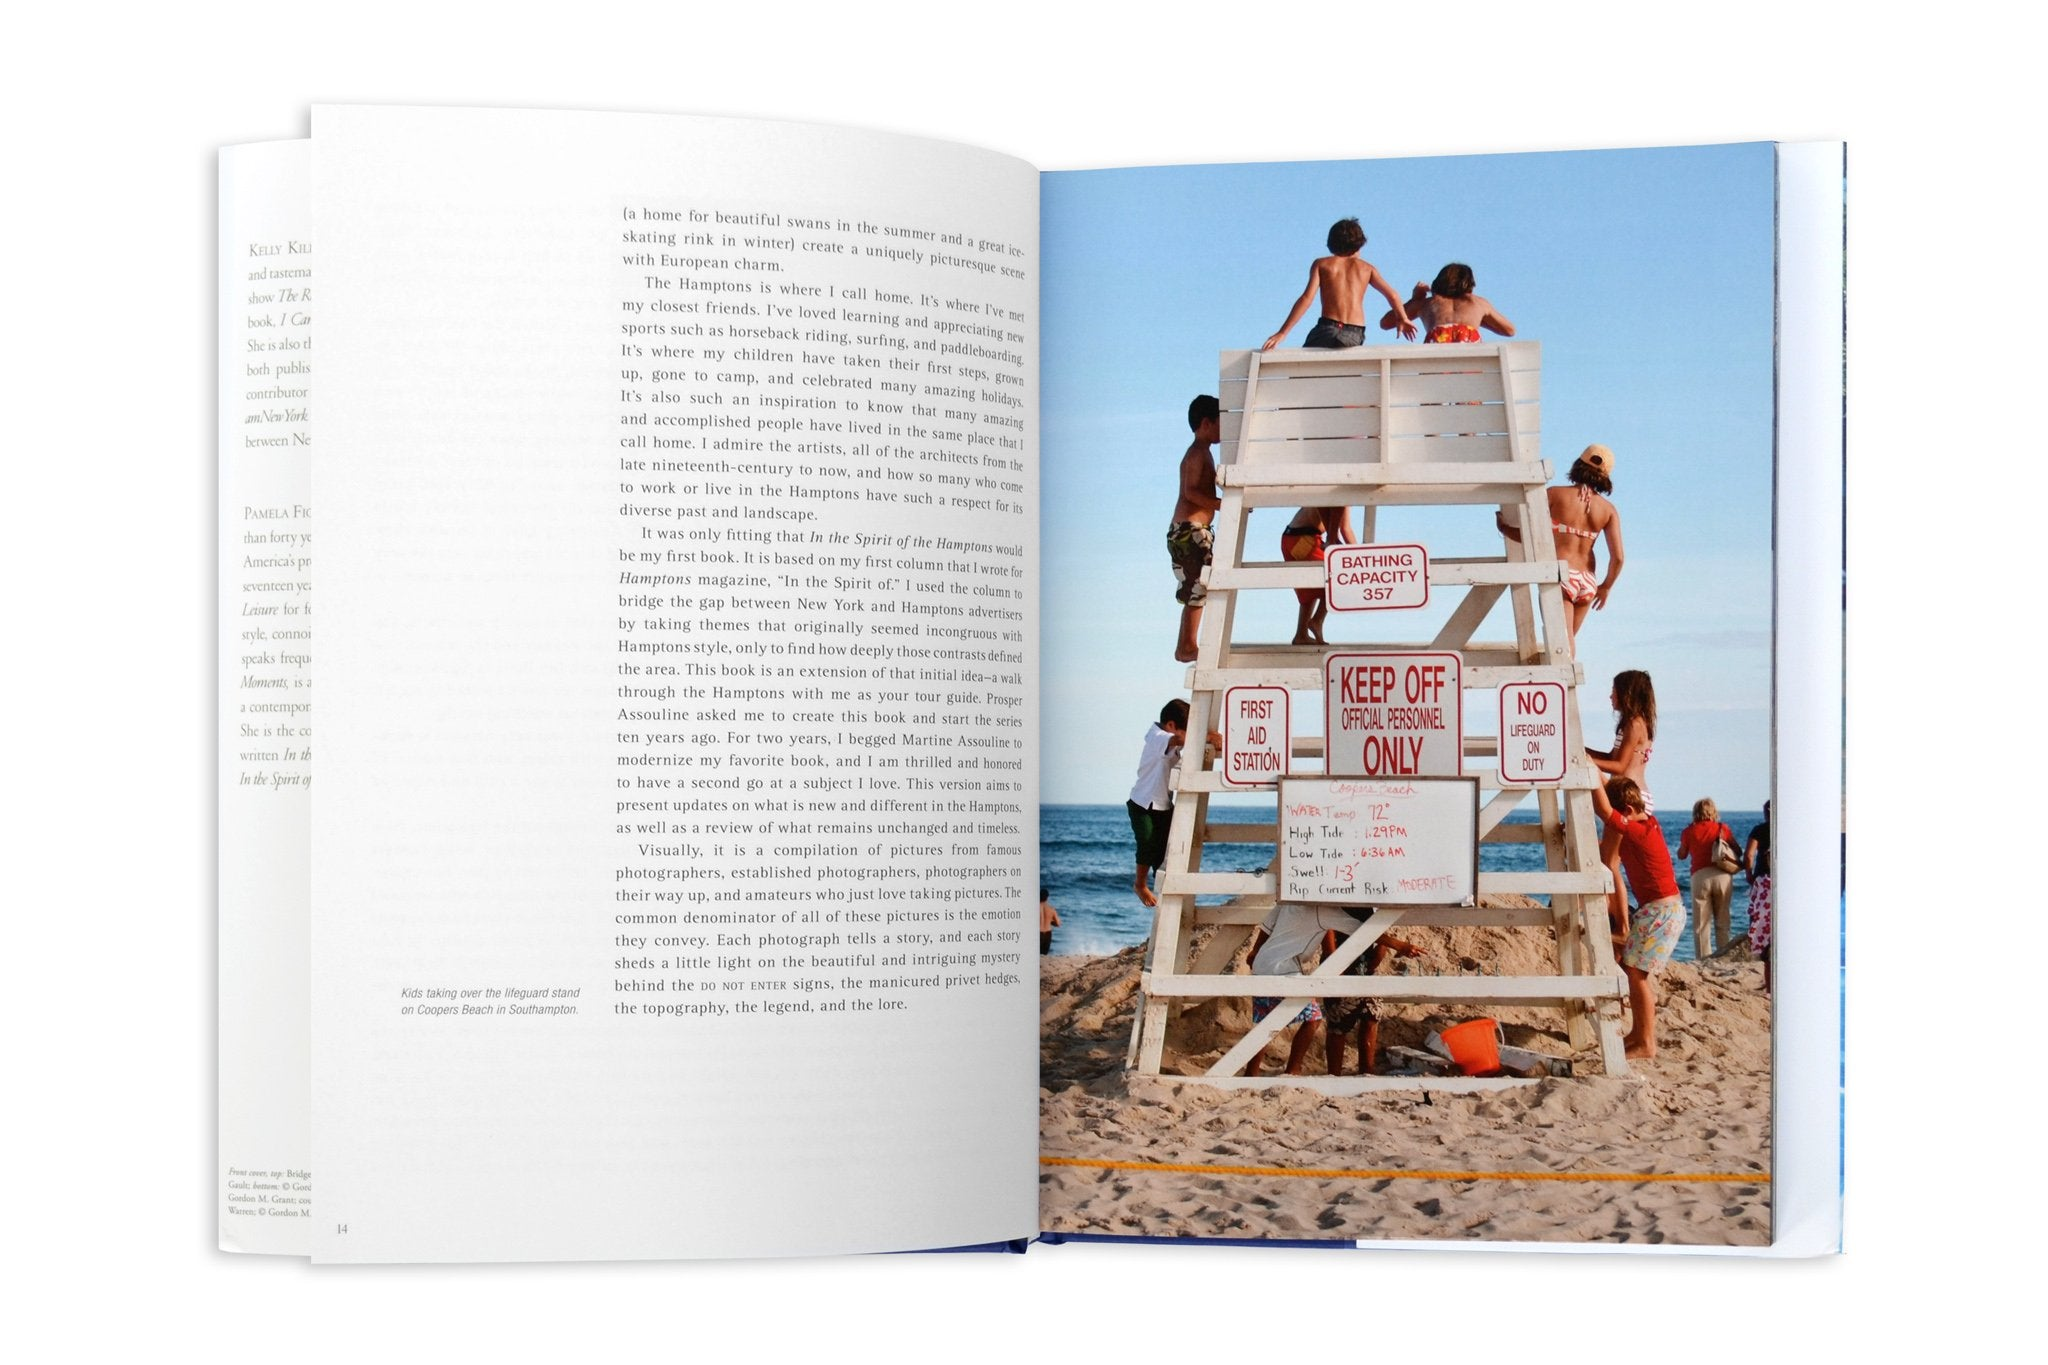 In the Spirit of the Hamptons - Assouline